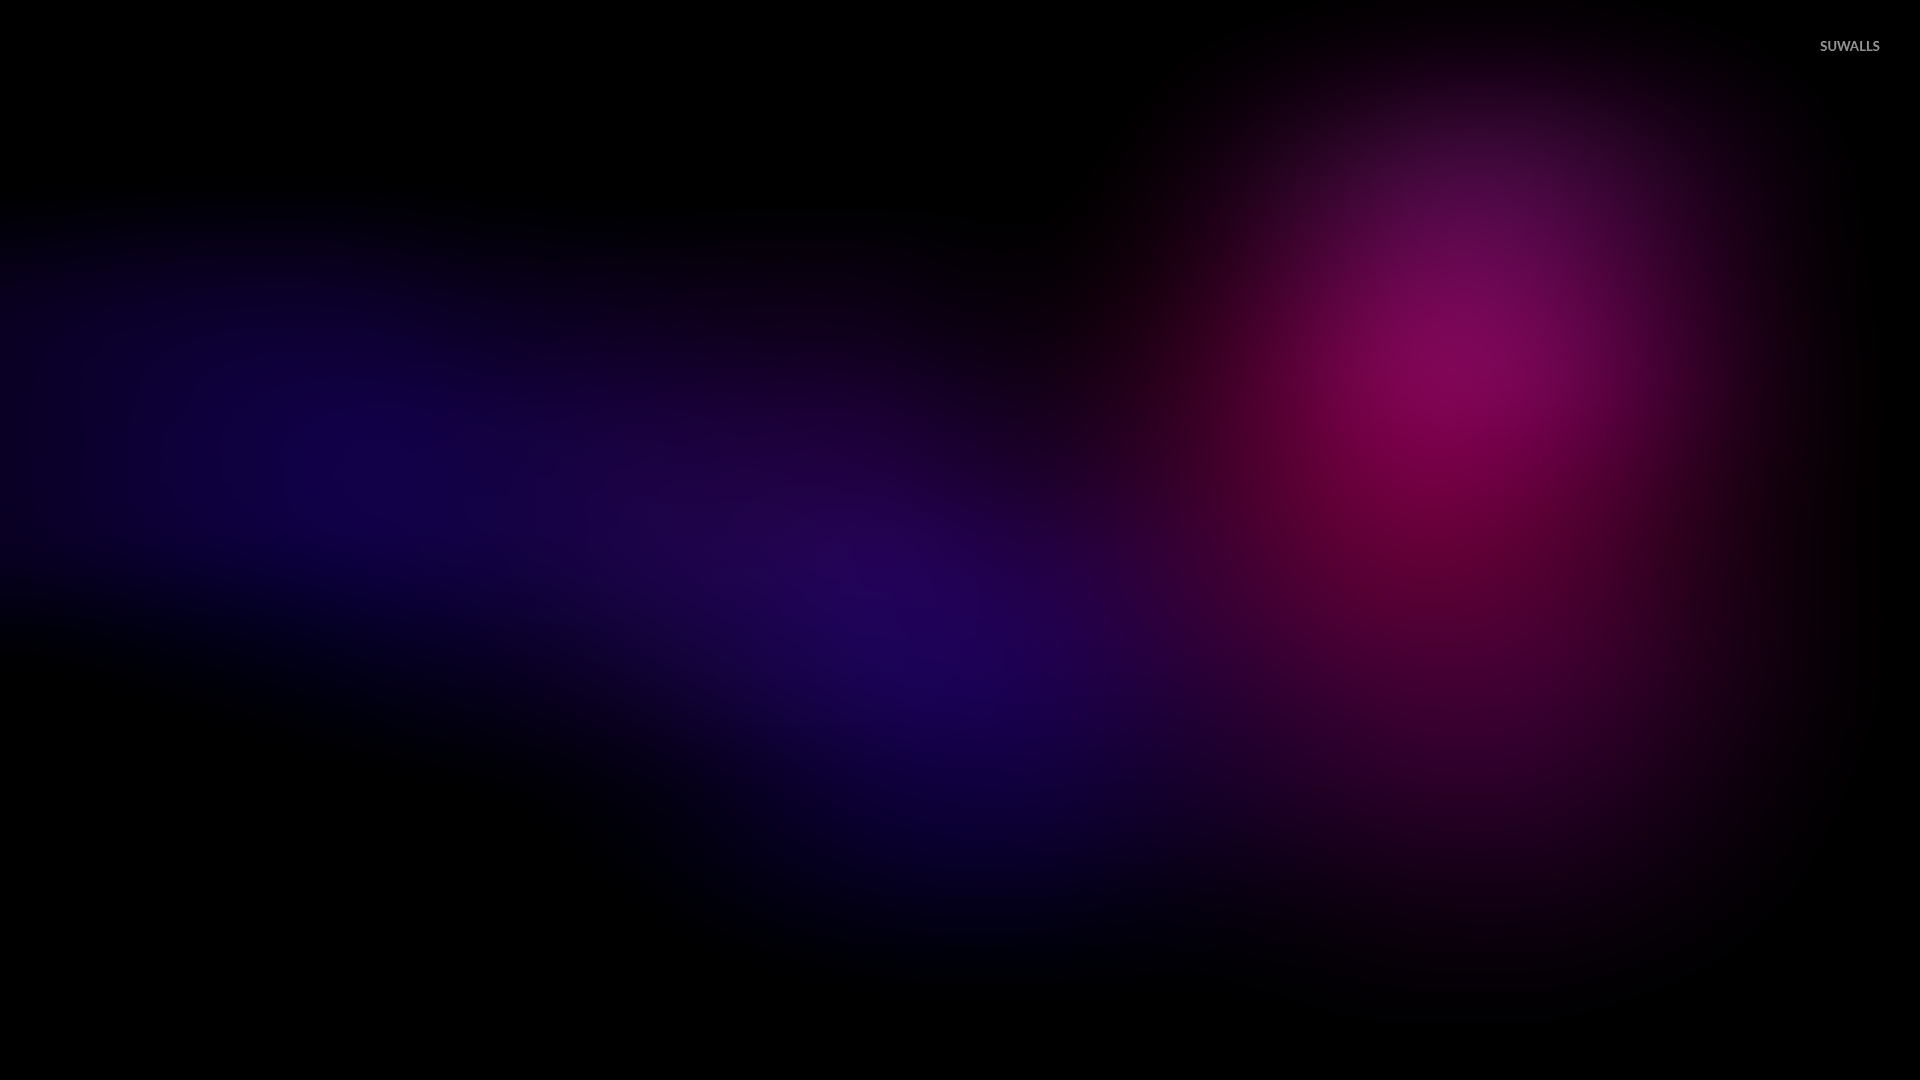 dark blur 2 wallpaper abstract wallpapers 26943